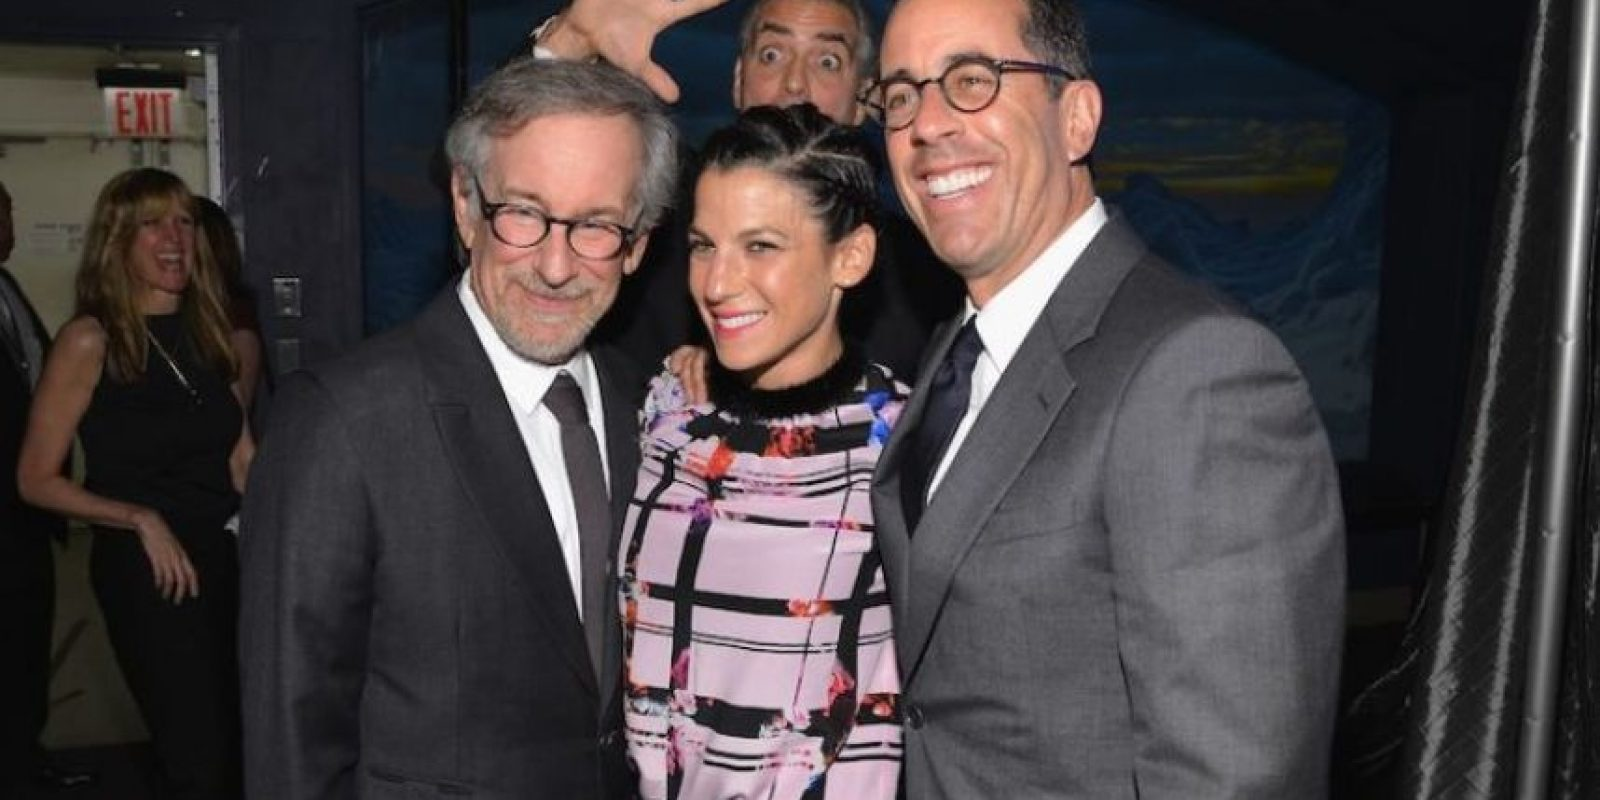 George Clooney, Steven Spielberg, Jessica Seinfeld y Jerry Seinfeld Foto:Getty Images